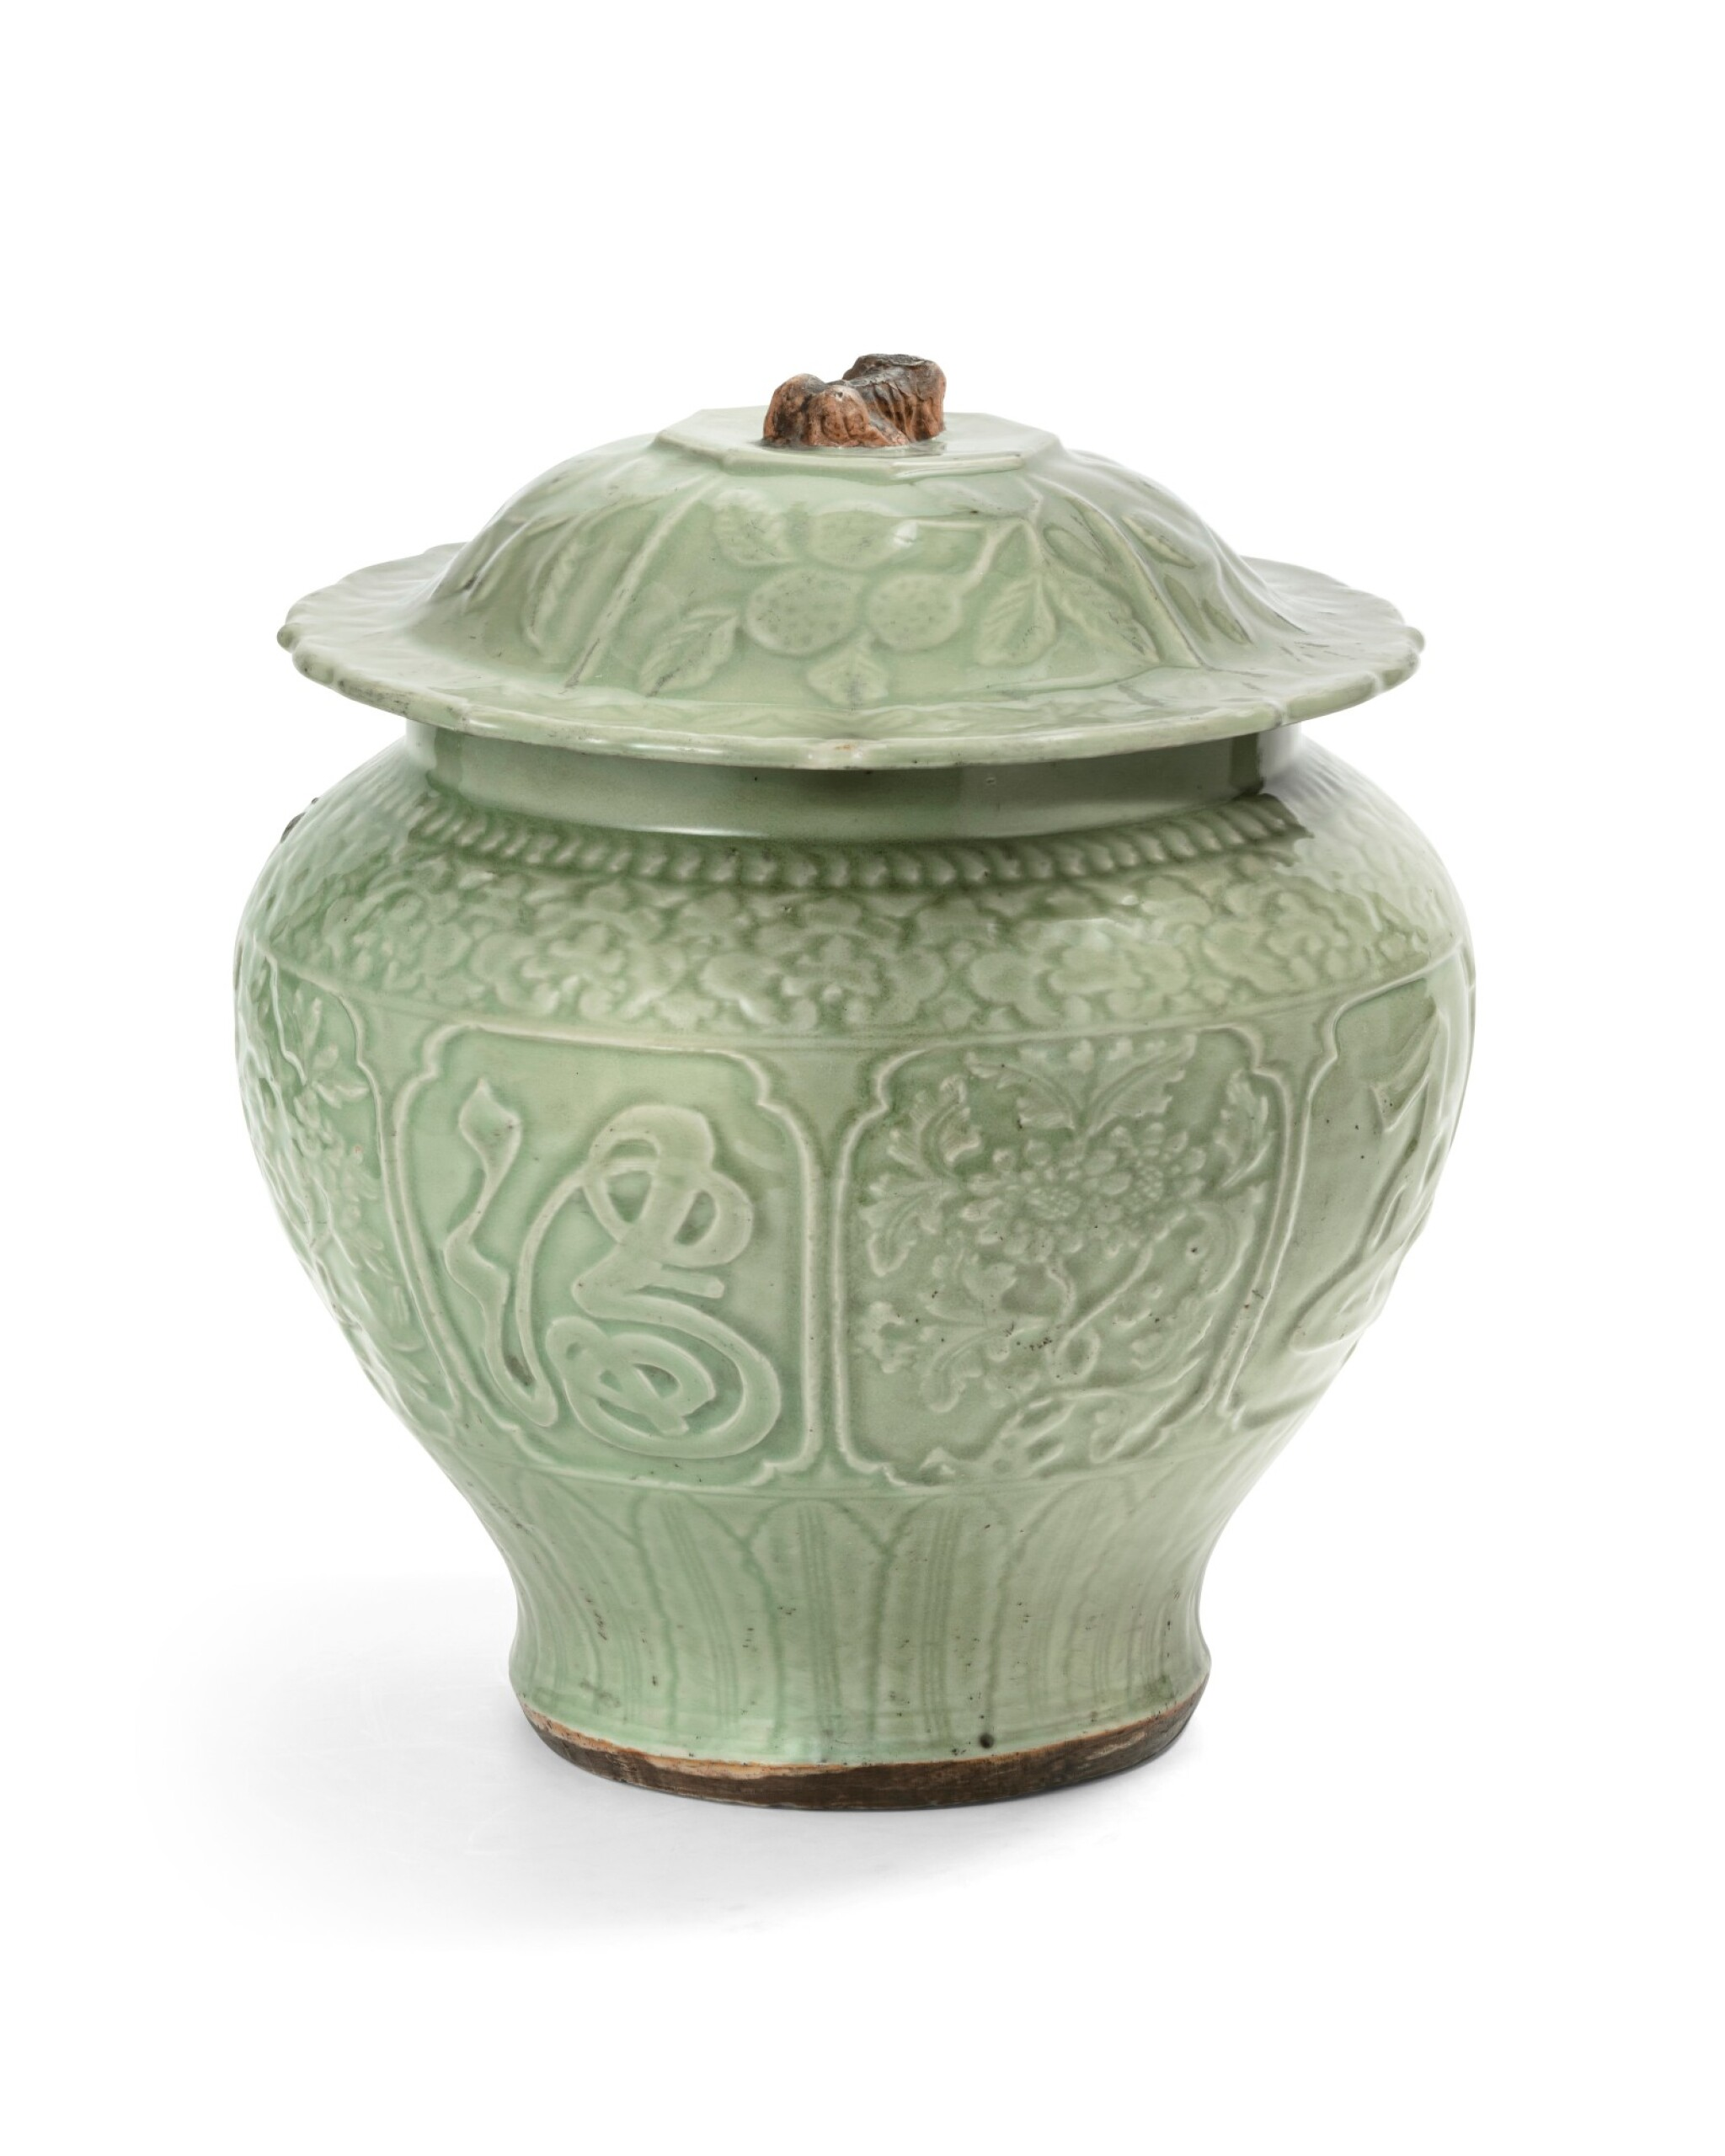 View full screen - View 1 of Lot 55. A large longquan celadon auspicious jar and cover Yuan-early Ming dynasties, 14th-15th century | 元至明早期 十四至十五世紀 龍泉窰青釉金玉滿堂蓋罐.